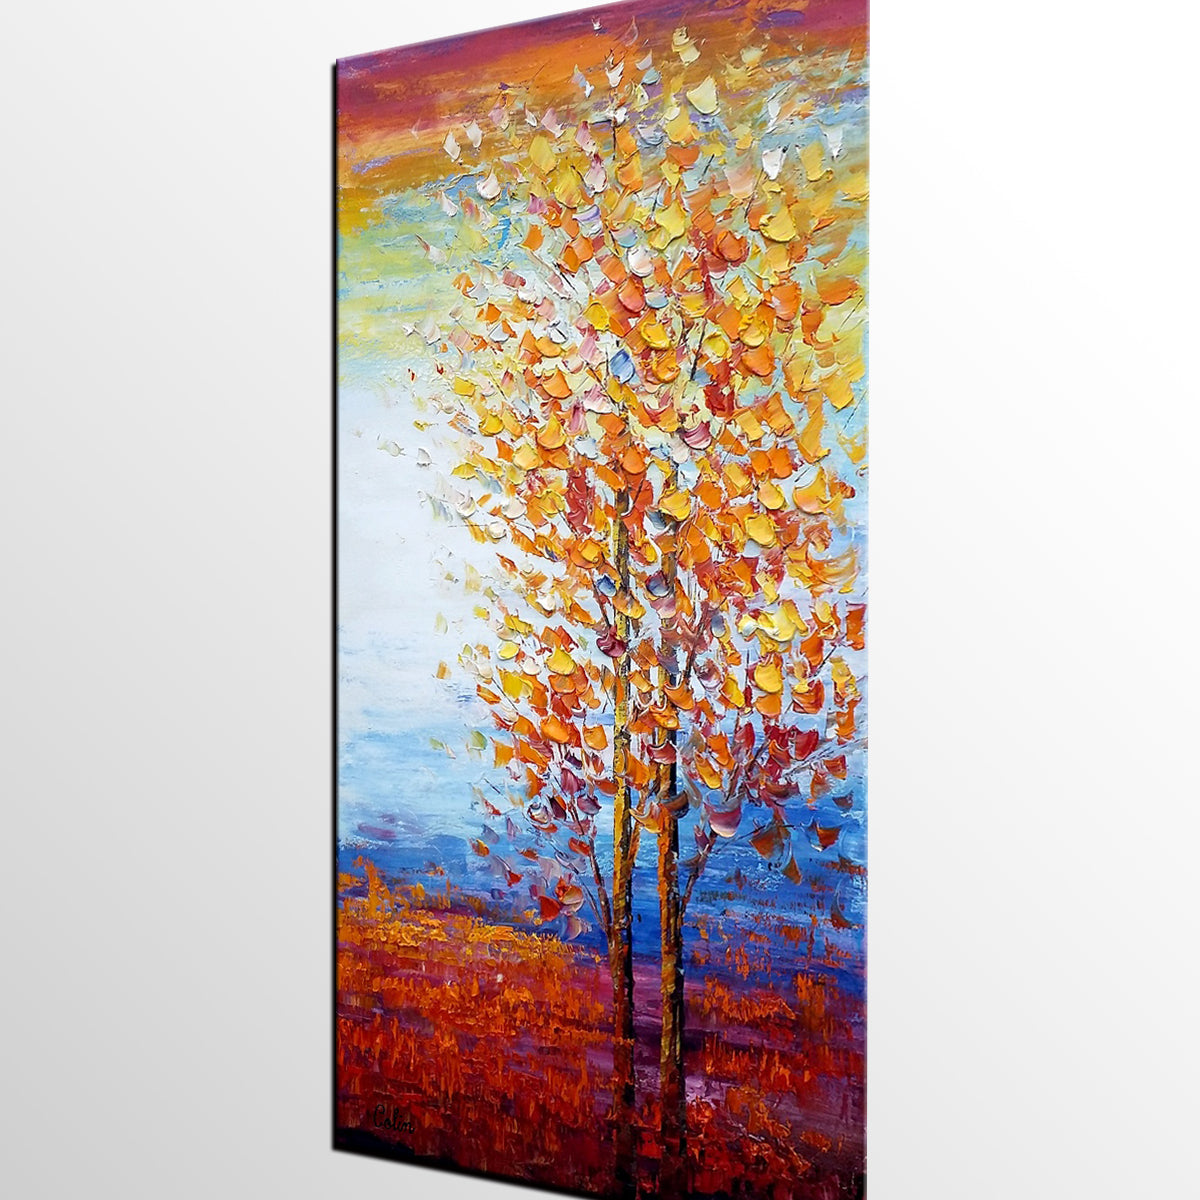 Living Room Wall Decor, Landscape Painting, Tree Painting, Large Wall Art, Canvas Art, Wall Art, Canvas Painting, Heavy Texture Art